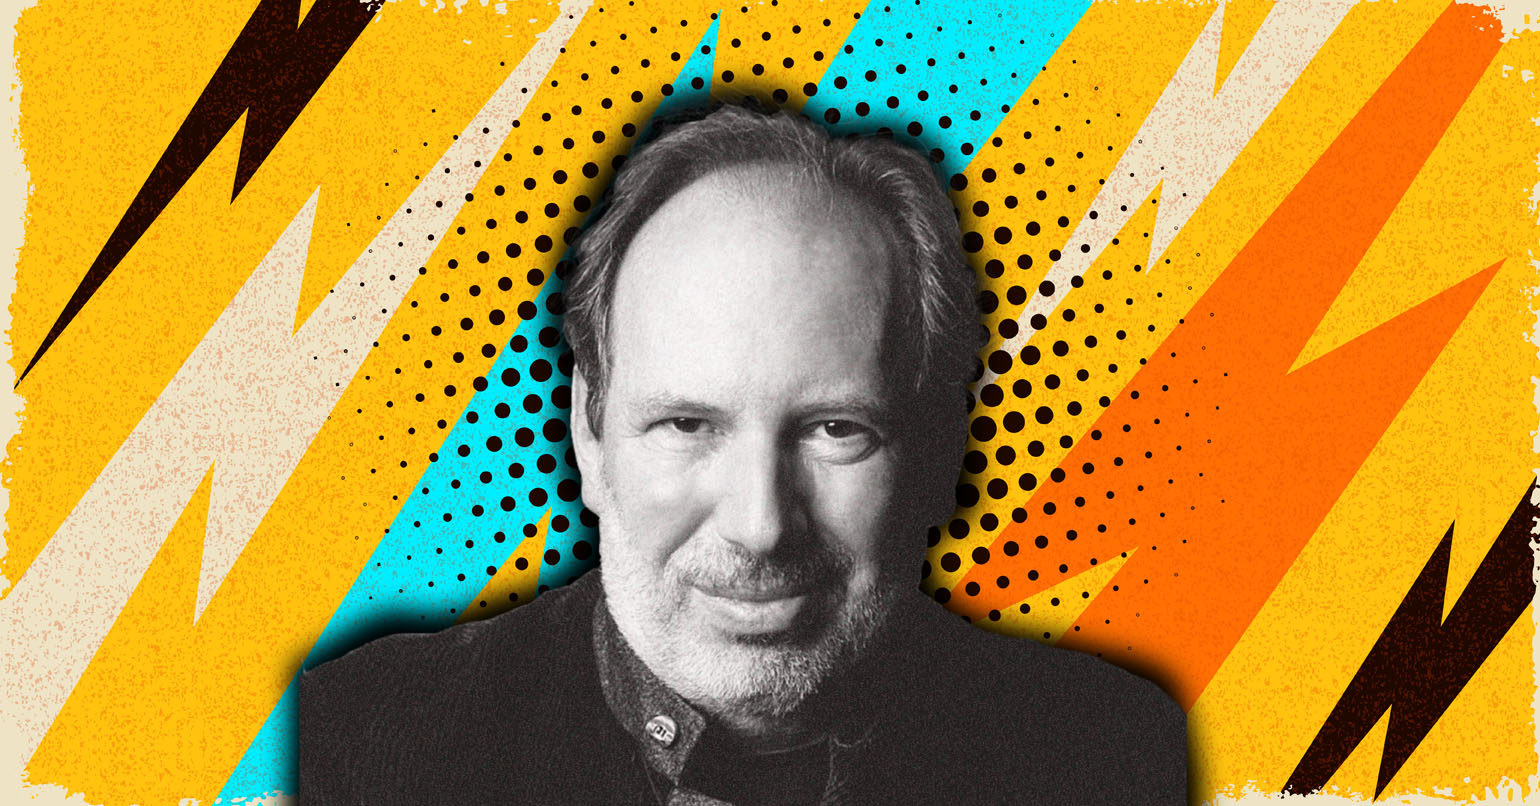 Hans Zimmer The greatest new age movie composer.